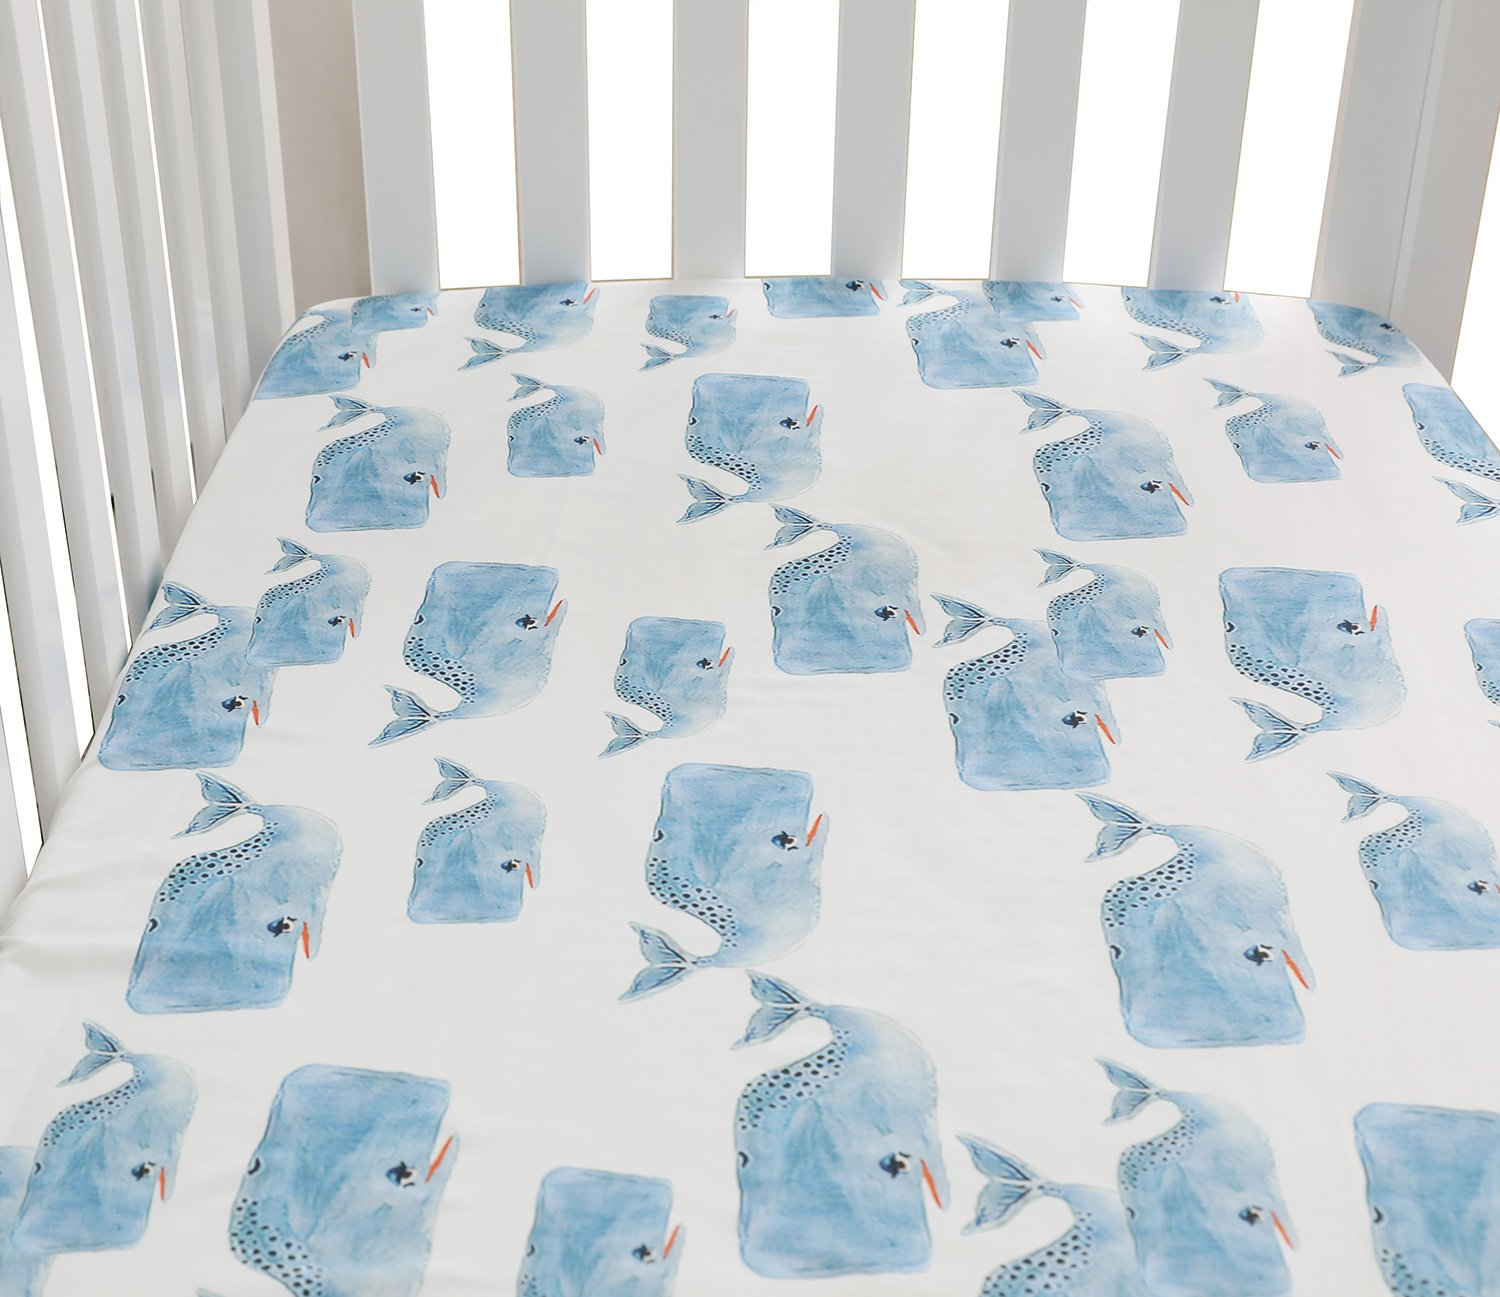 Baby Boy Floral Fitted Crib Sheet Toddler Bed Mattresses fits Standard Crib Mattress 28x52 (Whale)